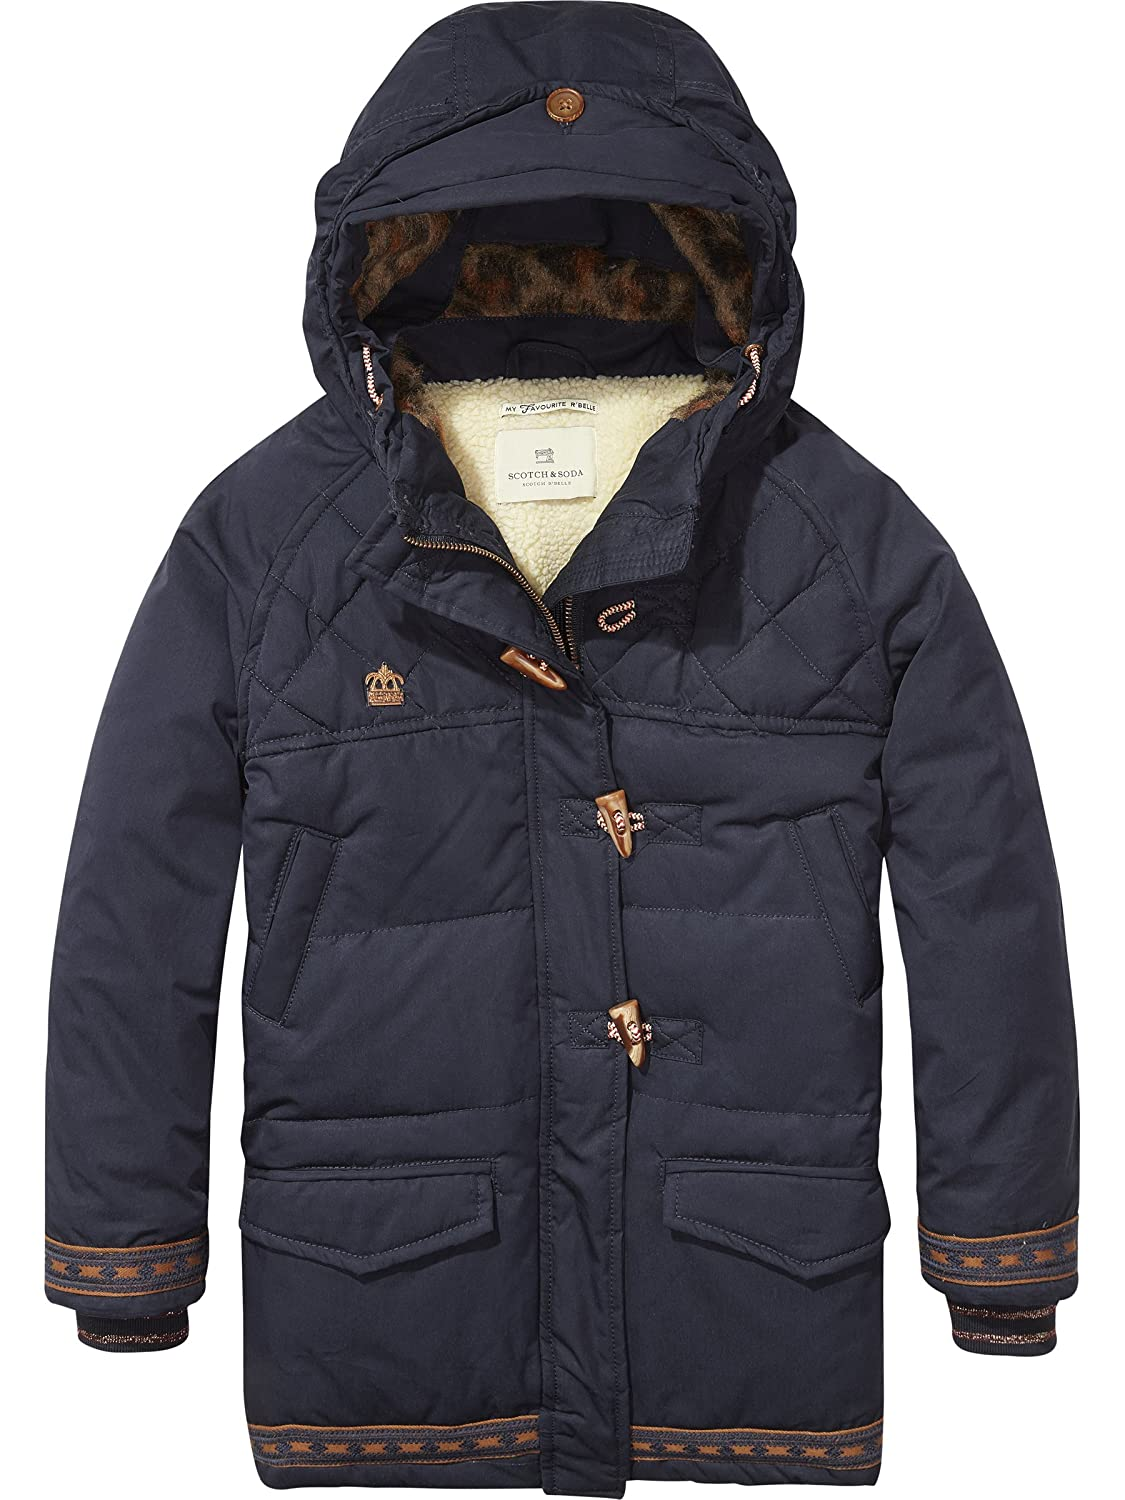 Bleu (Night 002)  Scotch & Soda Taped Mit Kapuze Shell Parka Blouson Fille